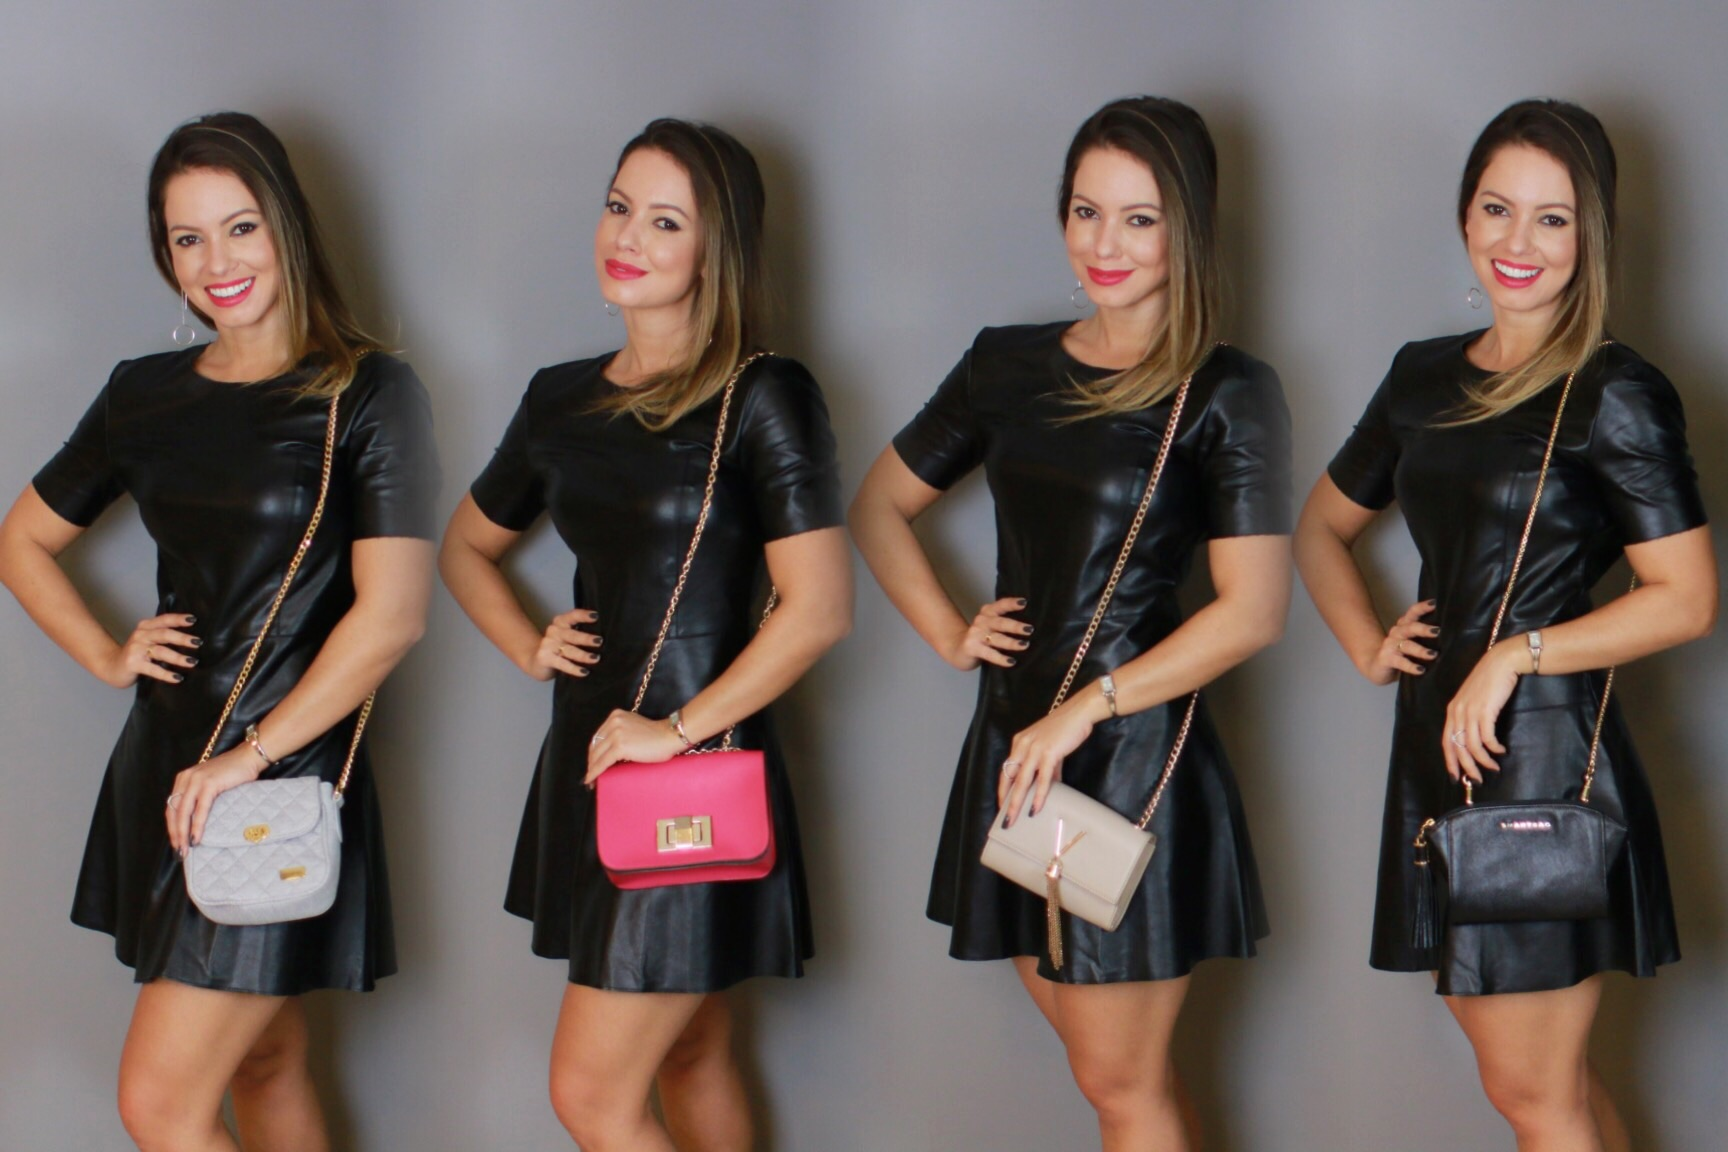 Bolsa De Franja Para Noite : Top mini bolsas preferidas juliana goes